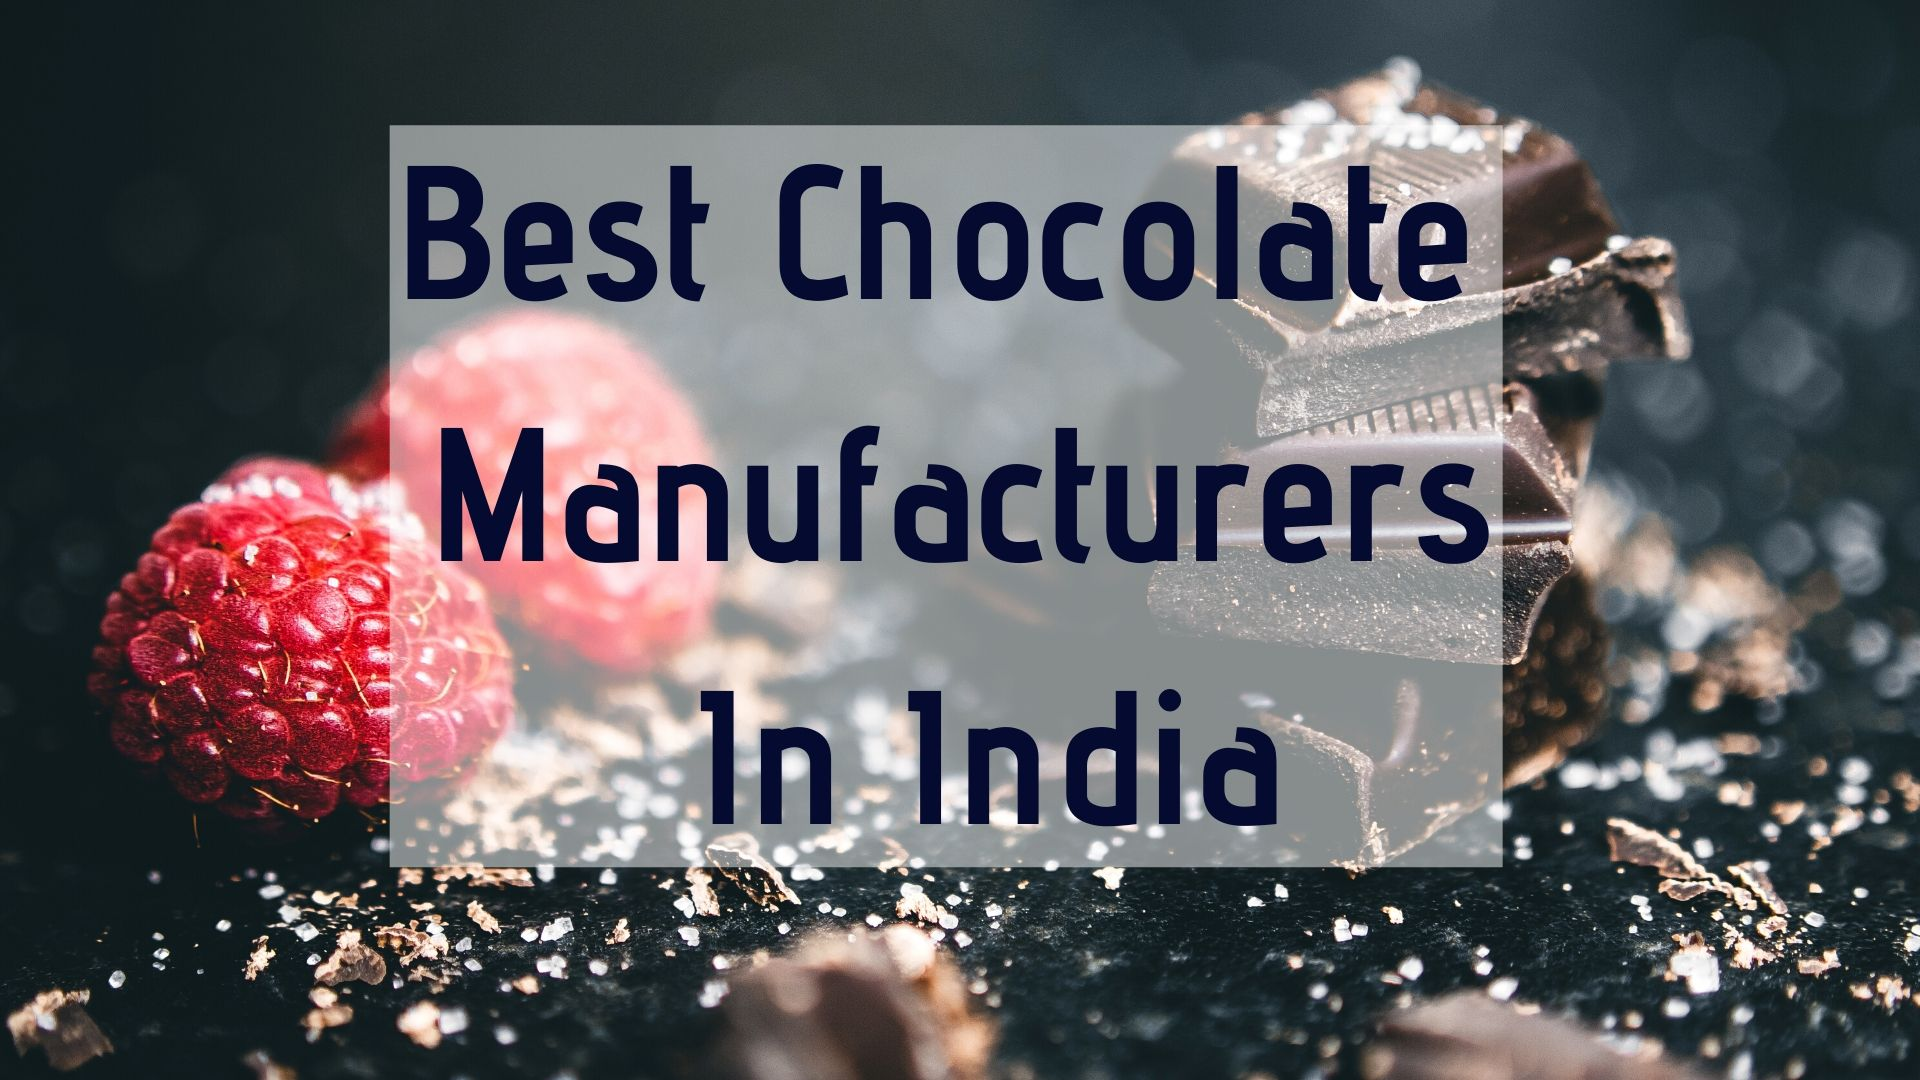 Best Chocolate Manufacturers In India